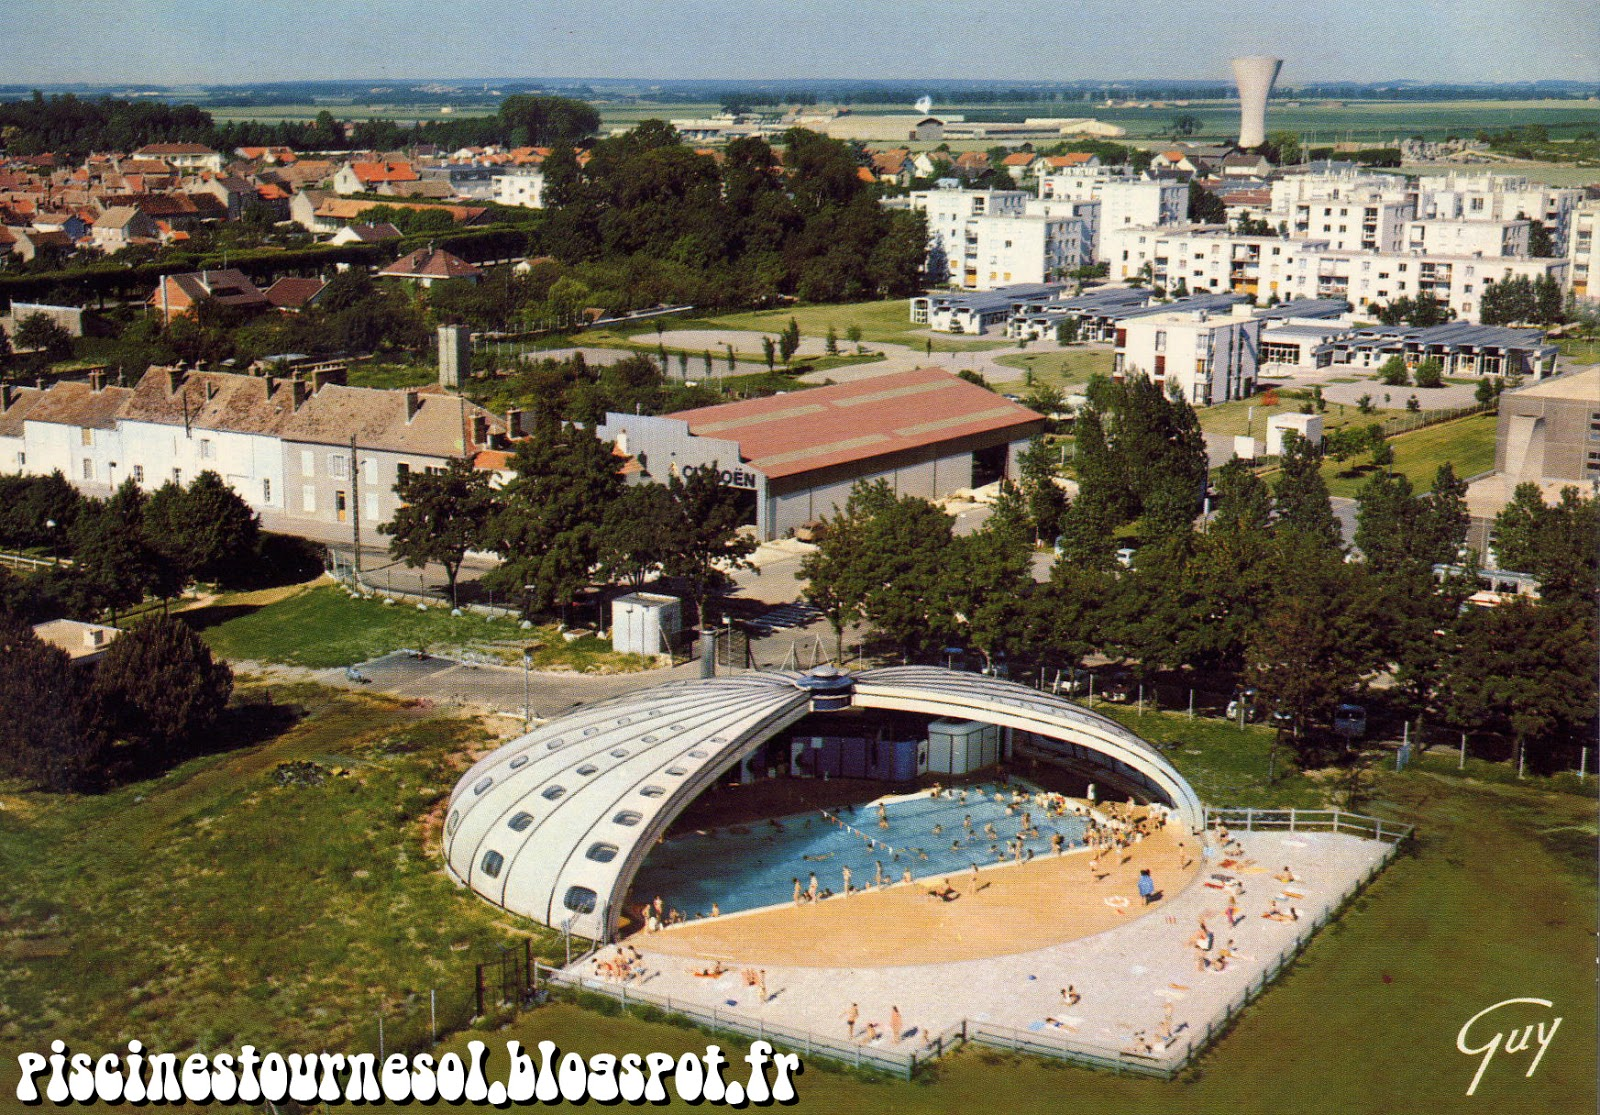 Piscines tournesol piscine tournesol nangis for Piscine tournesol